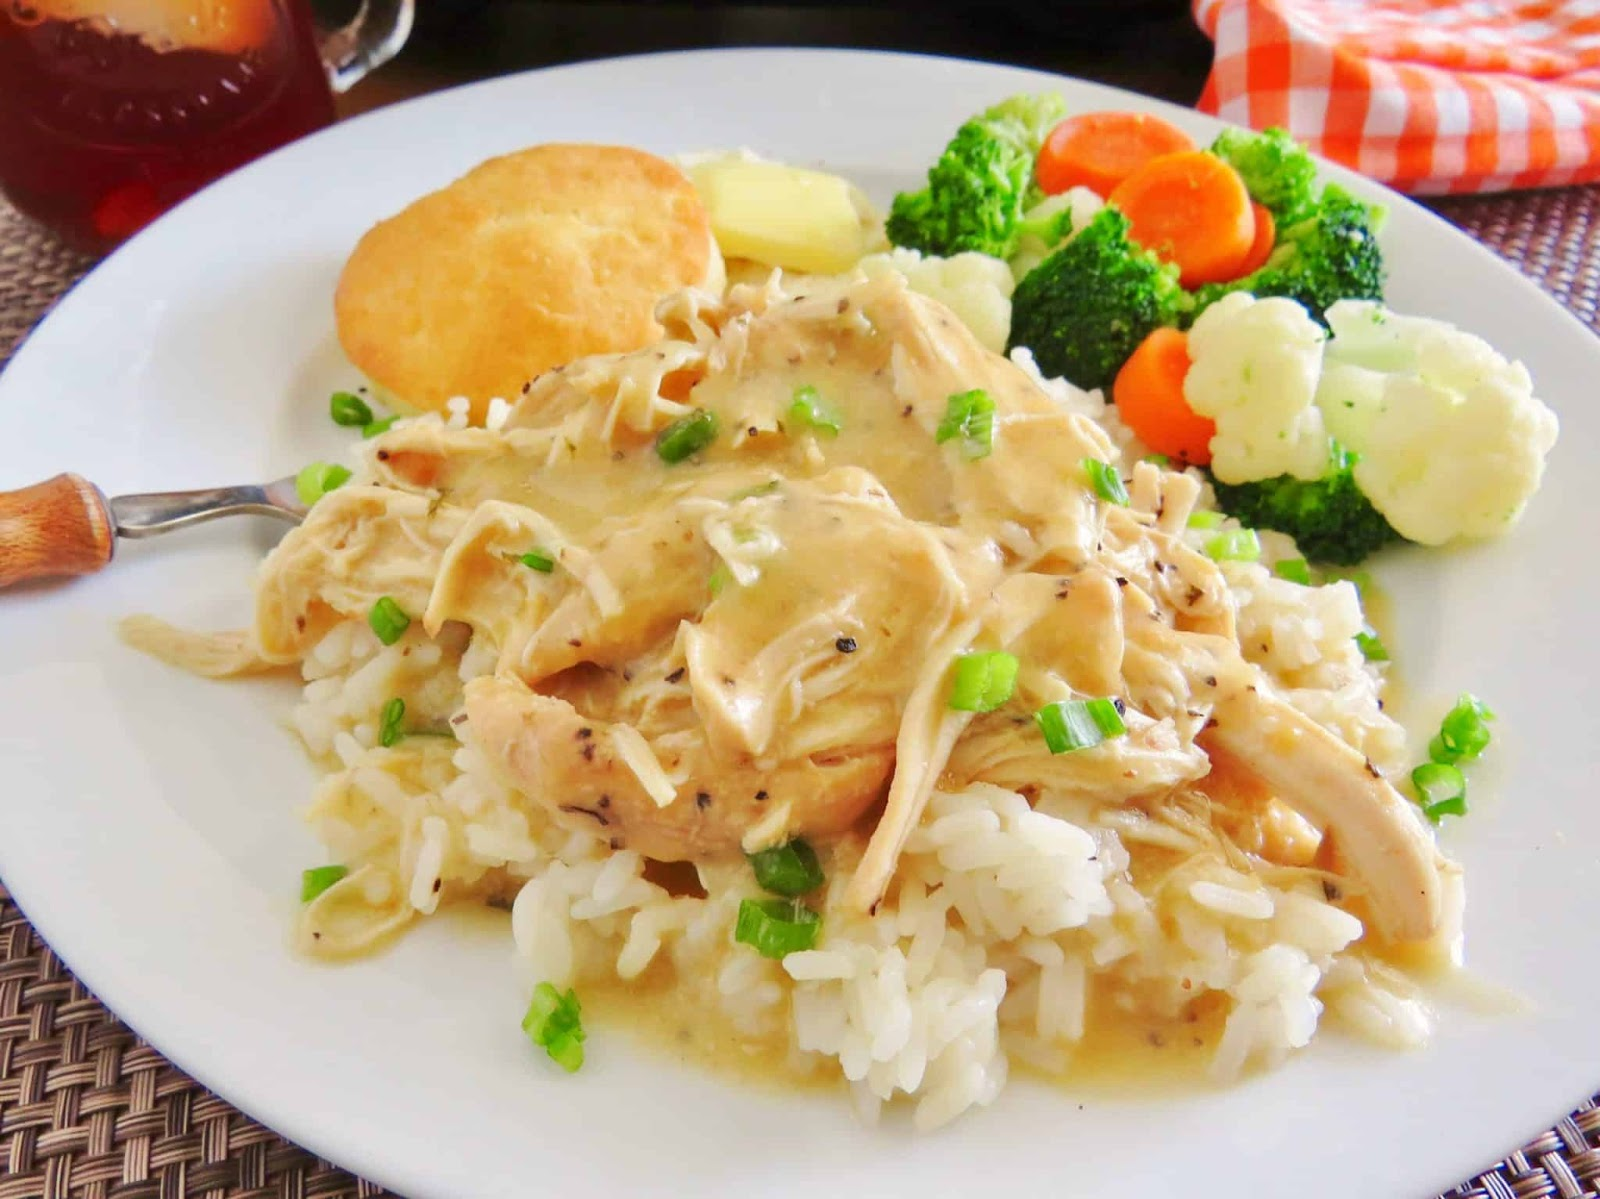 CROCK POT CHICKEN AND GRAVY #chicken #dinner #easy #healthyrecipes #yummy